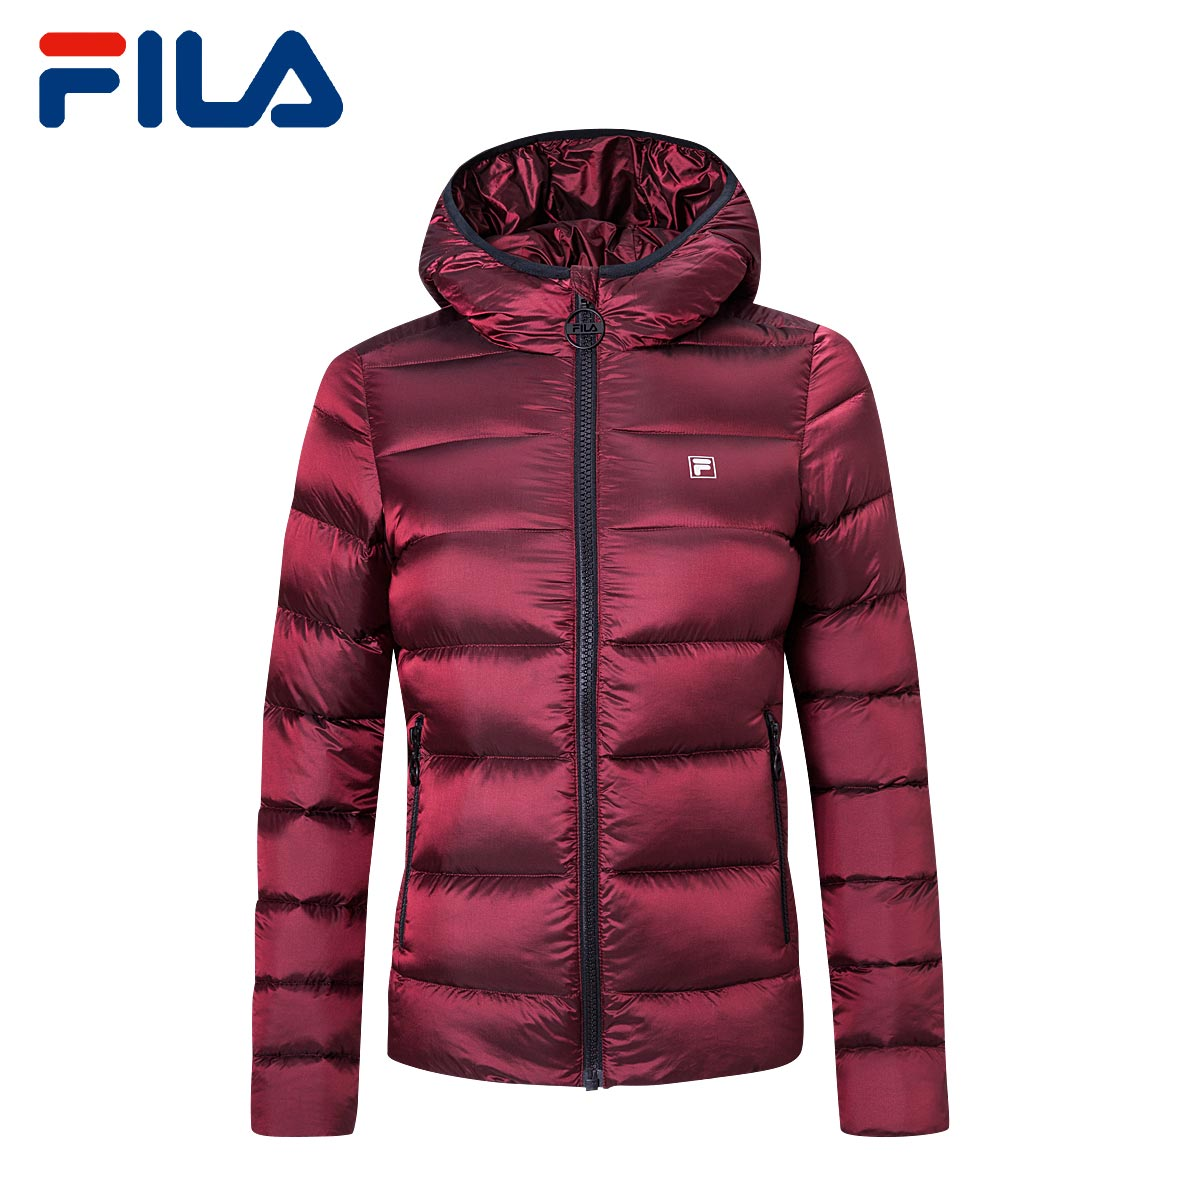 de6414e118f2 ... lightbox moreview · lightbox moreview. PrevNext. 1fila Fei Le female  down jacket 2018 Winter new hooded sports jacket female warm wind ...